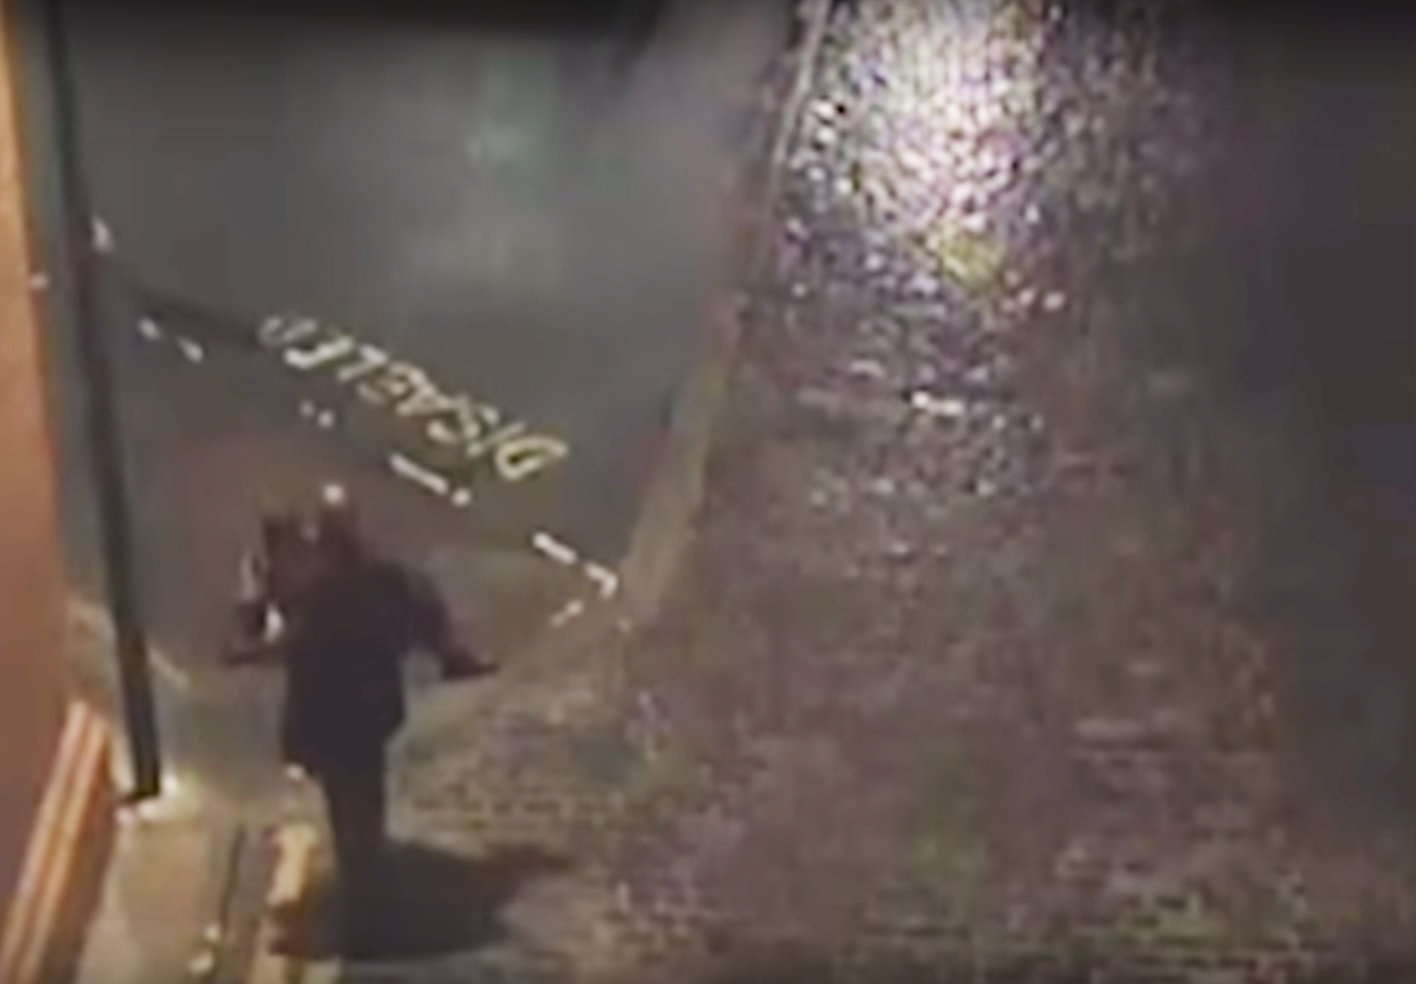 Police issue chilling footage of suspected rapist carrying his victim through city streets